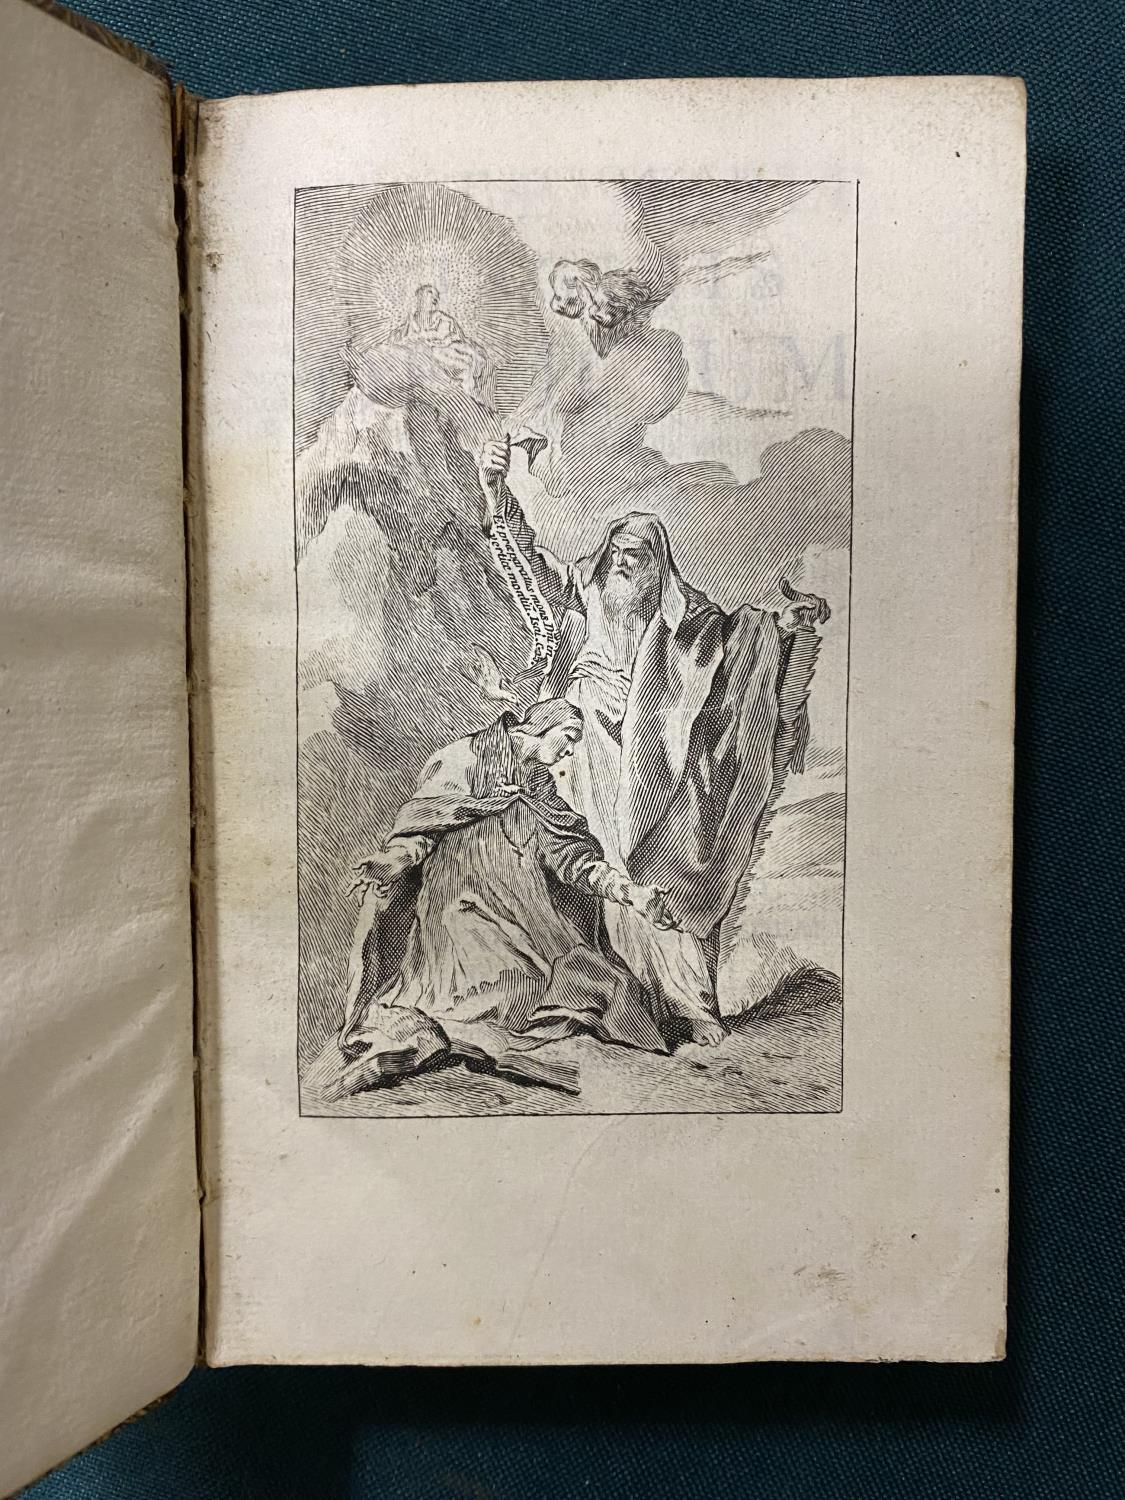 [Anon] Beatae Mariae Virginis Officium, engraved throughout, frontispiece, vignette on title and - Image 3 of 4